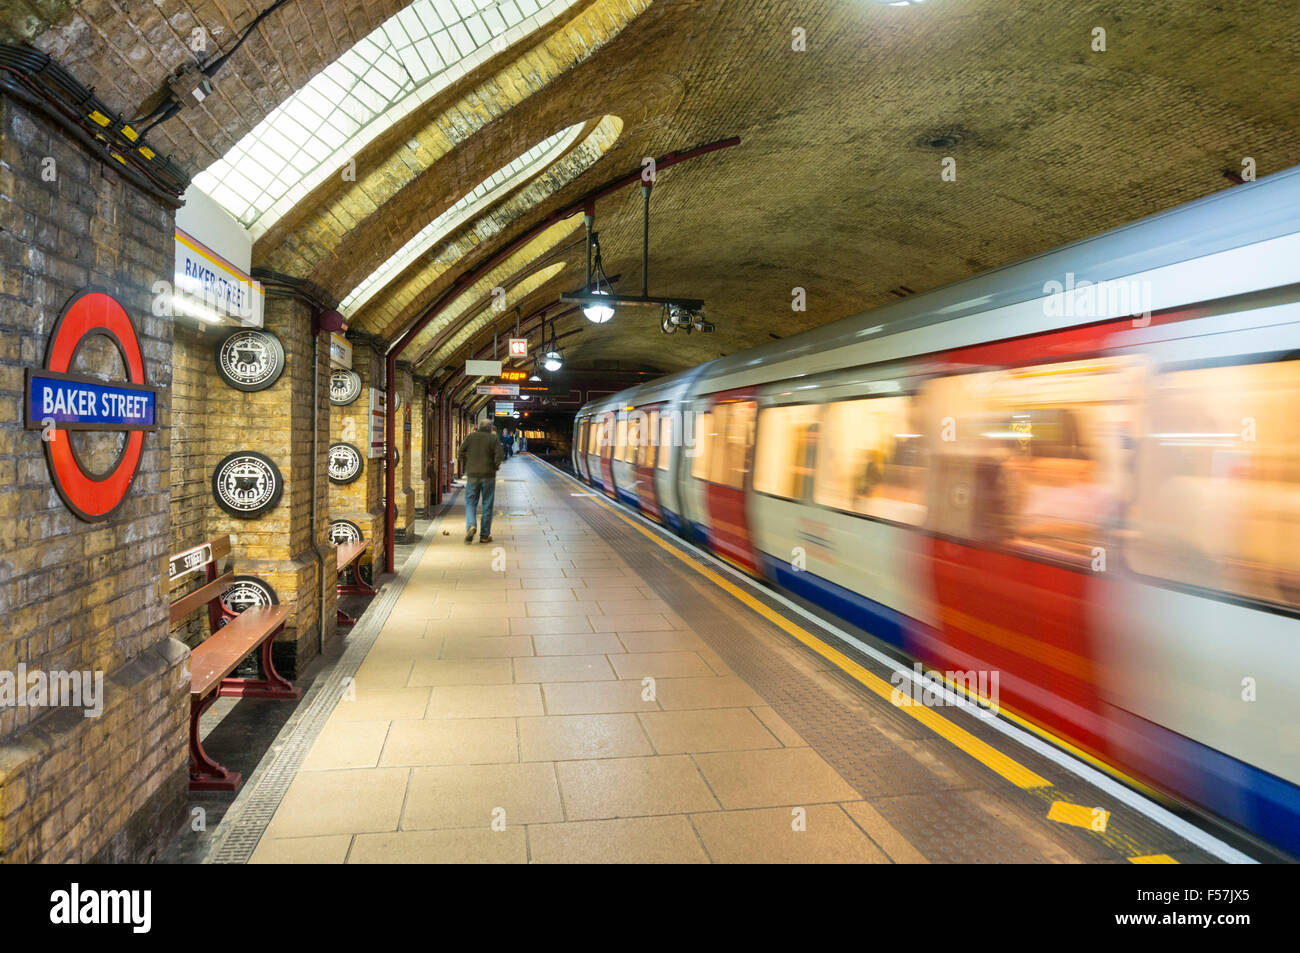 Victorian architecture and exposed brickwork at Baker Street underground station platform London England UK Gb EU - Stock Image